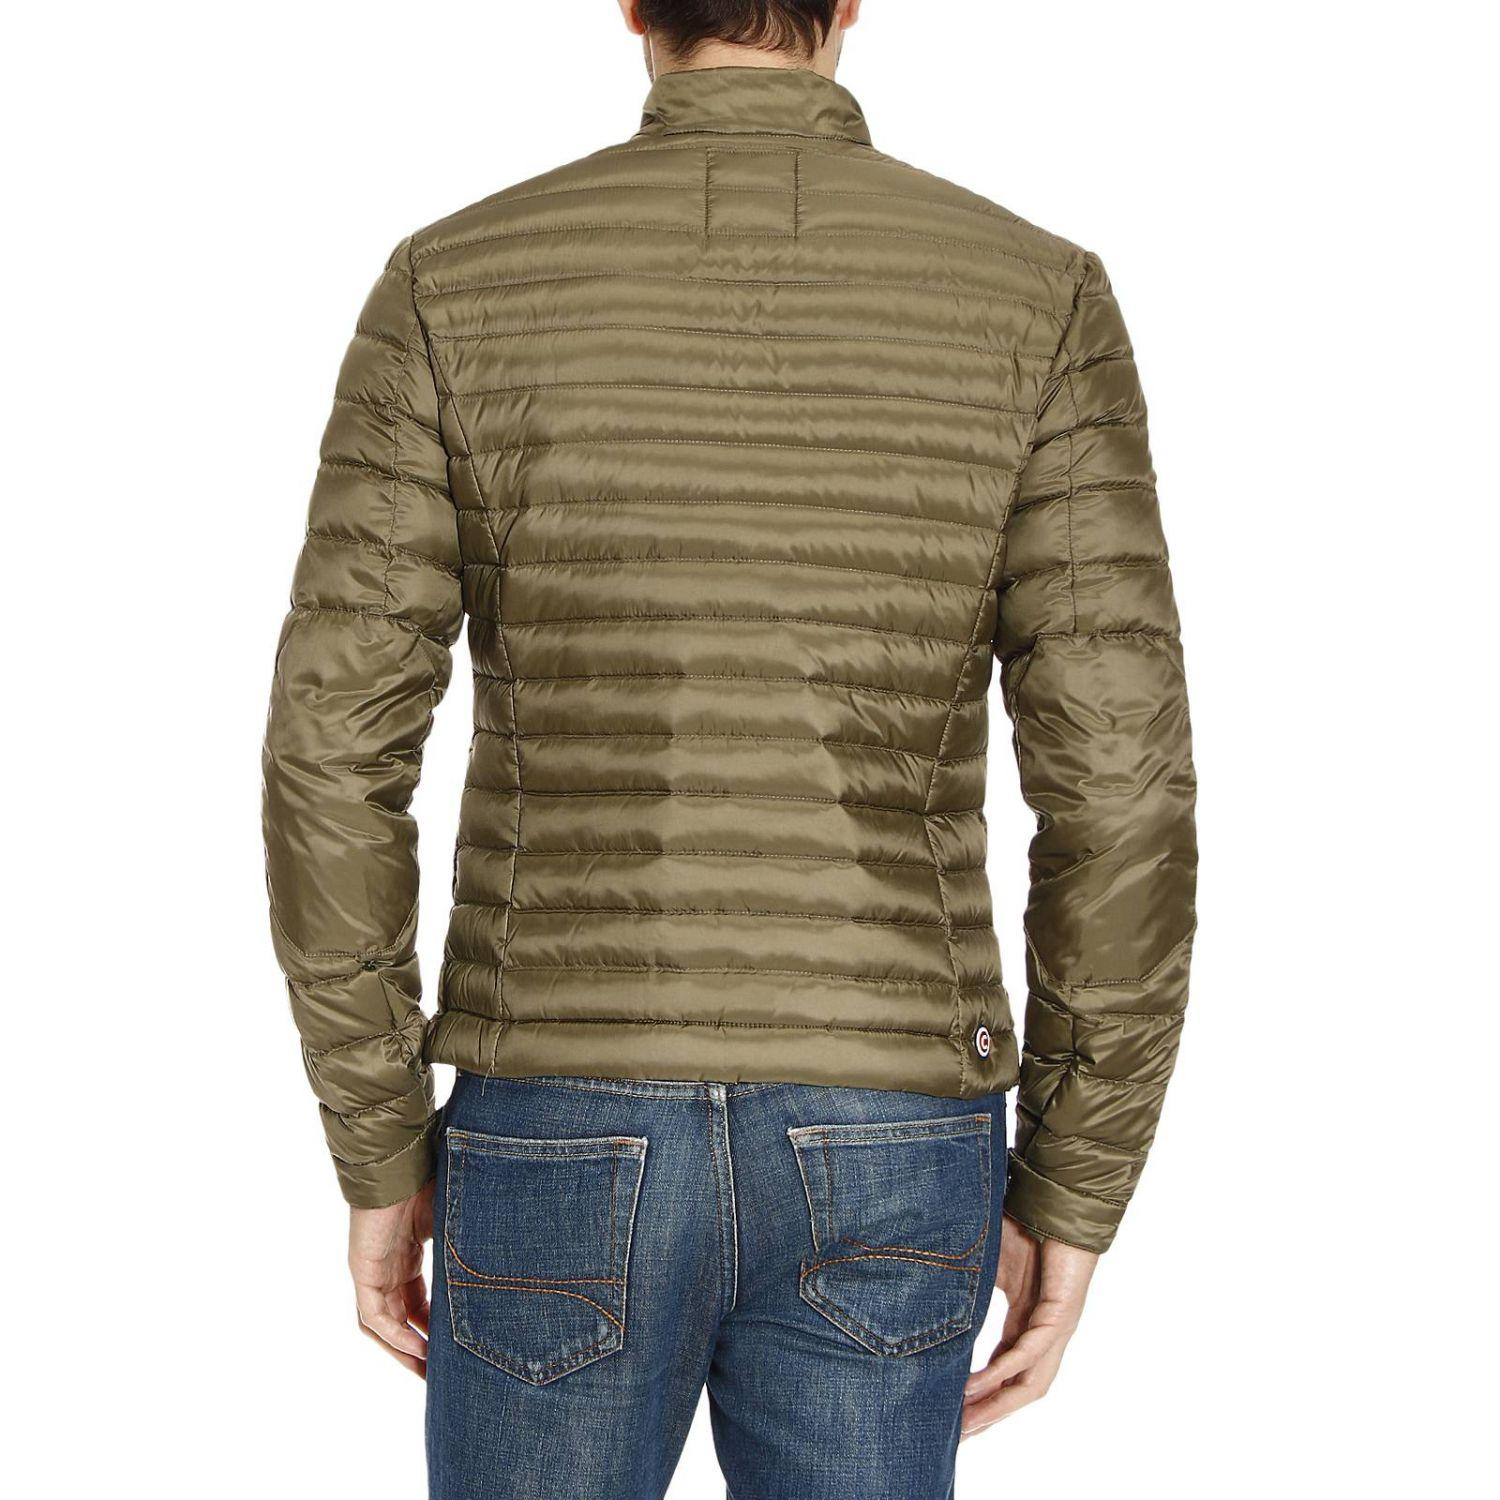 colmar hindu single men New colmar originals ss18 collection men's down jackets and coats buy online in complete safety at the official e-shop and get it conveniently delivered to your home.